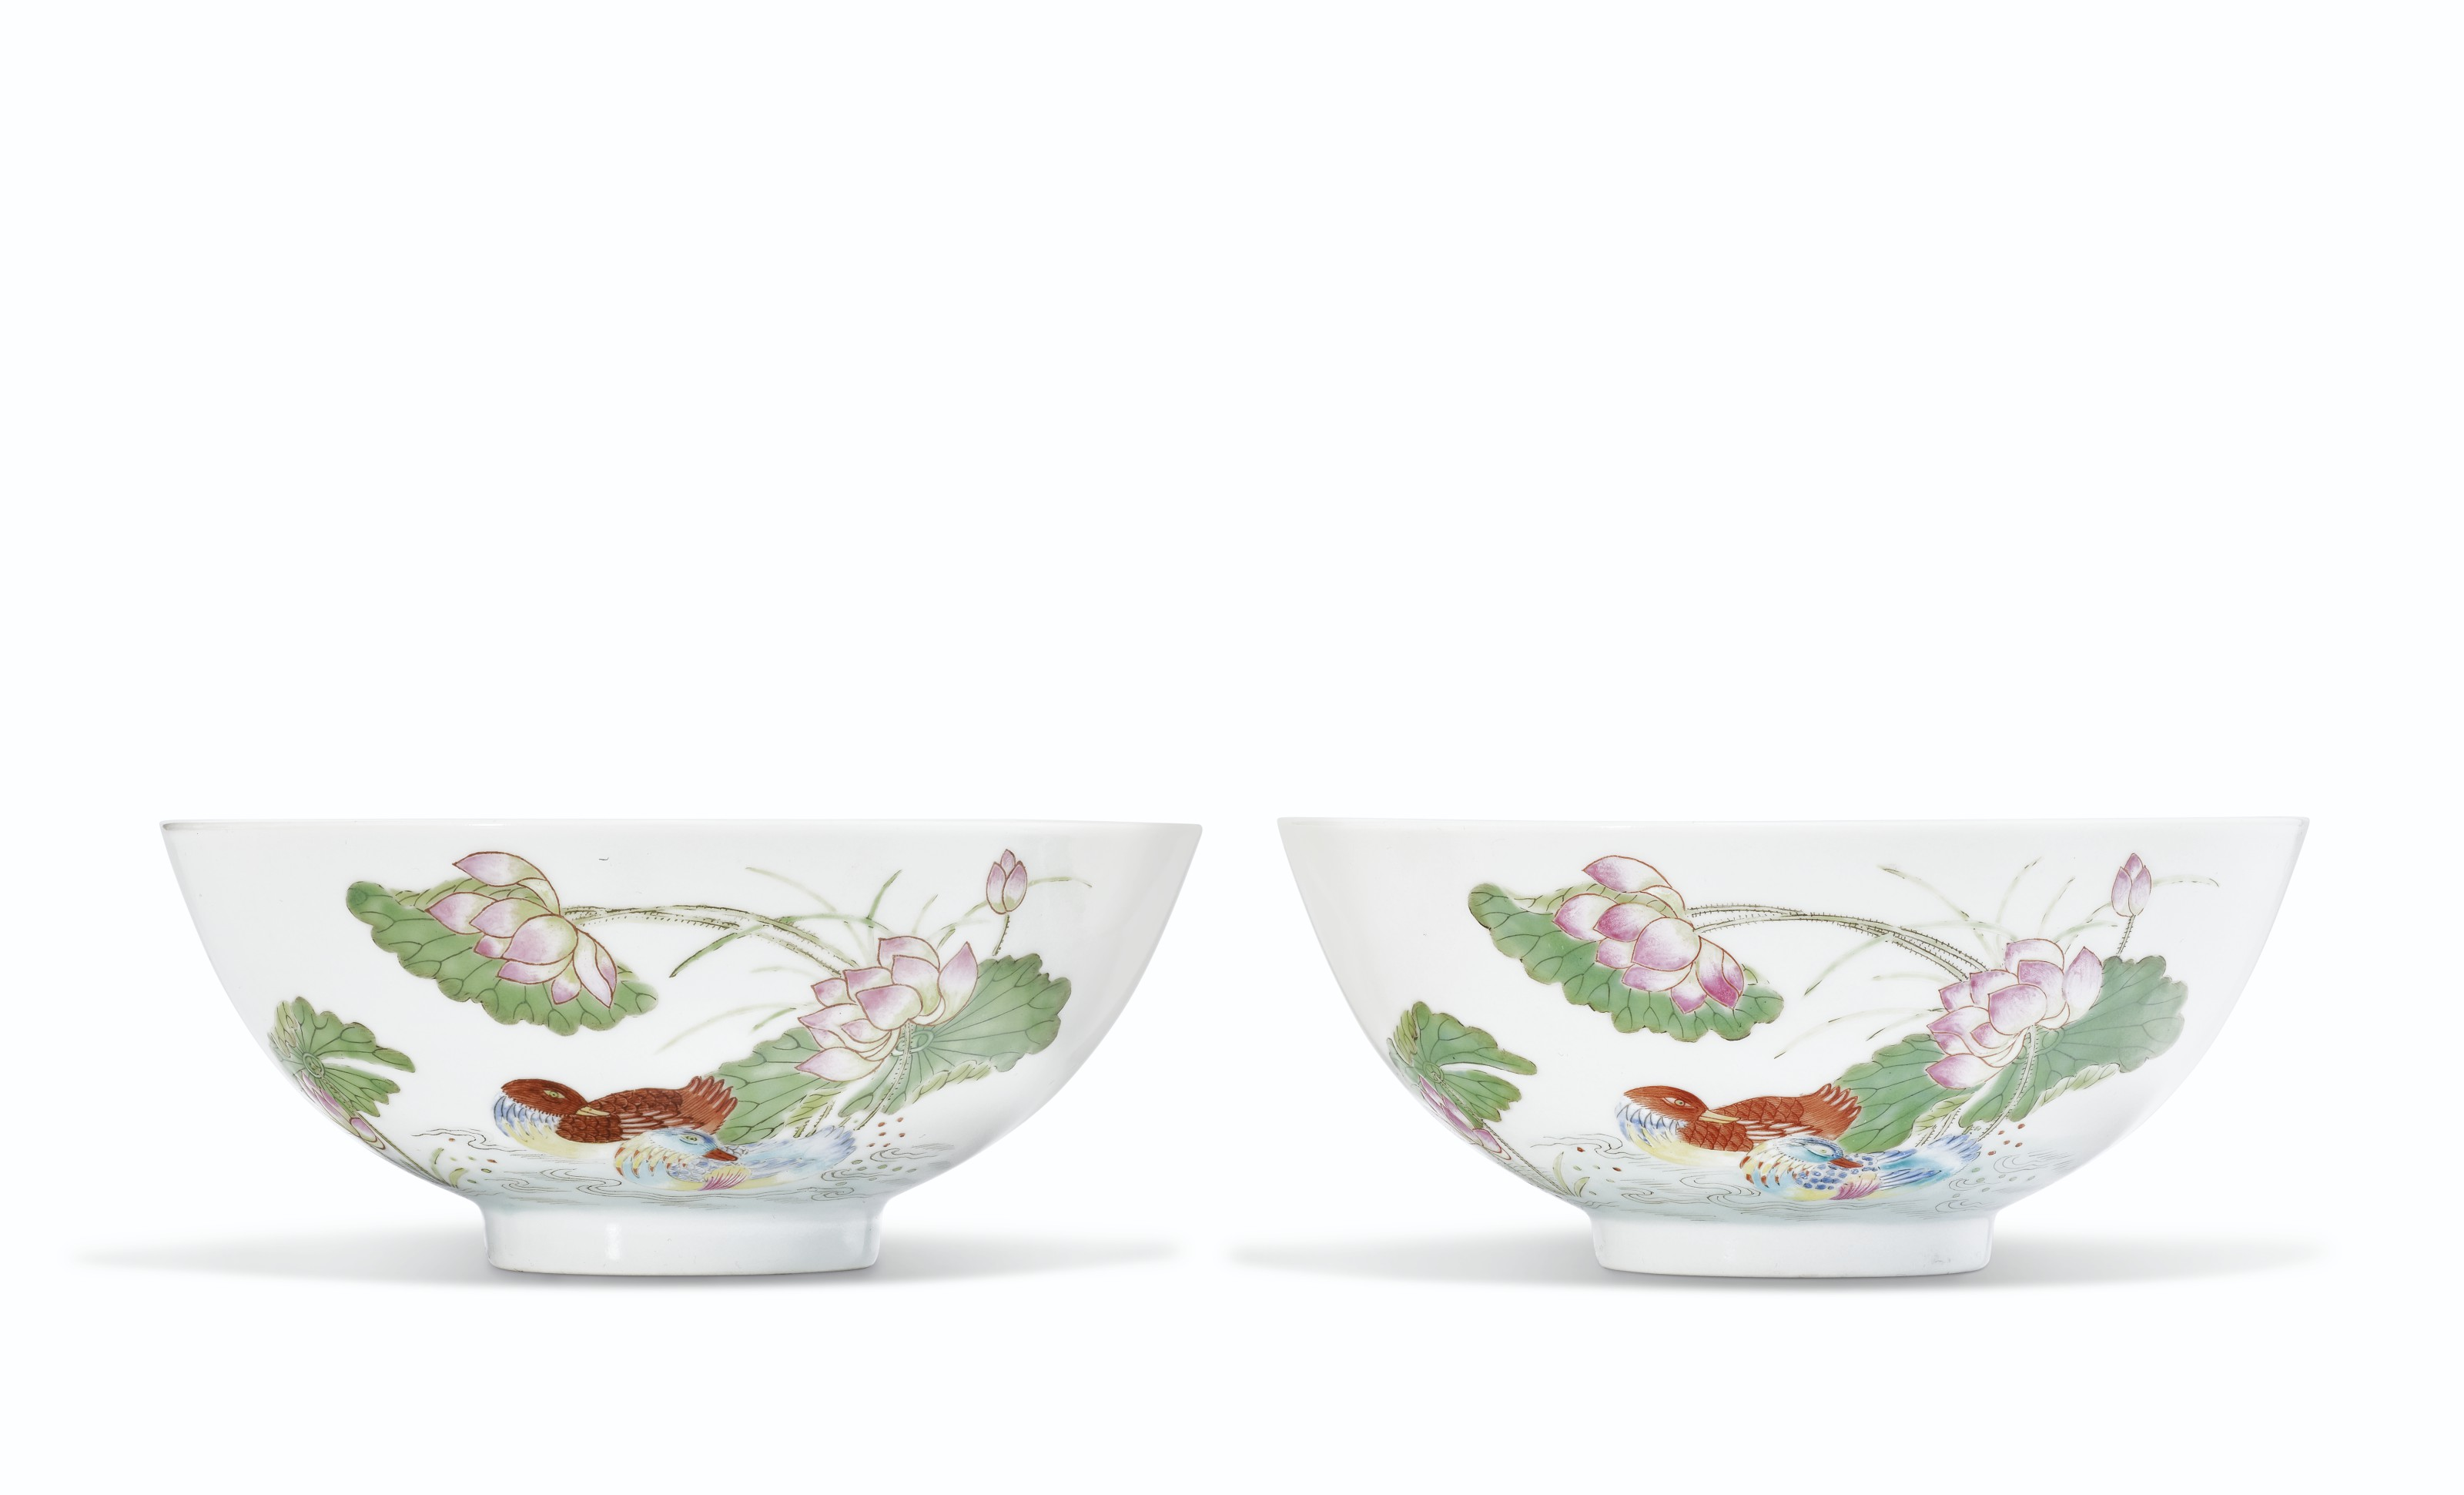 A RARE PAIR OF FAMILLE ROSE 'MANDARIN DUCKS' BOWLS